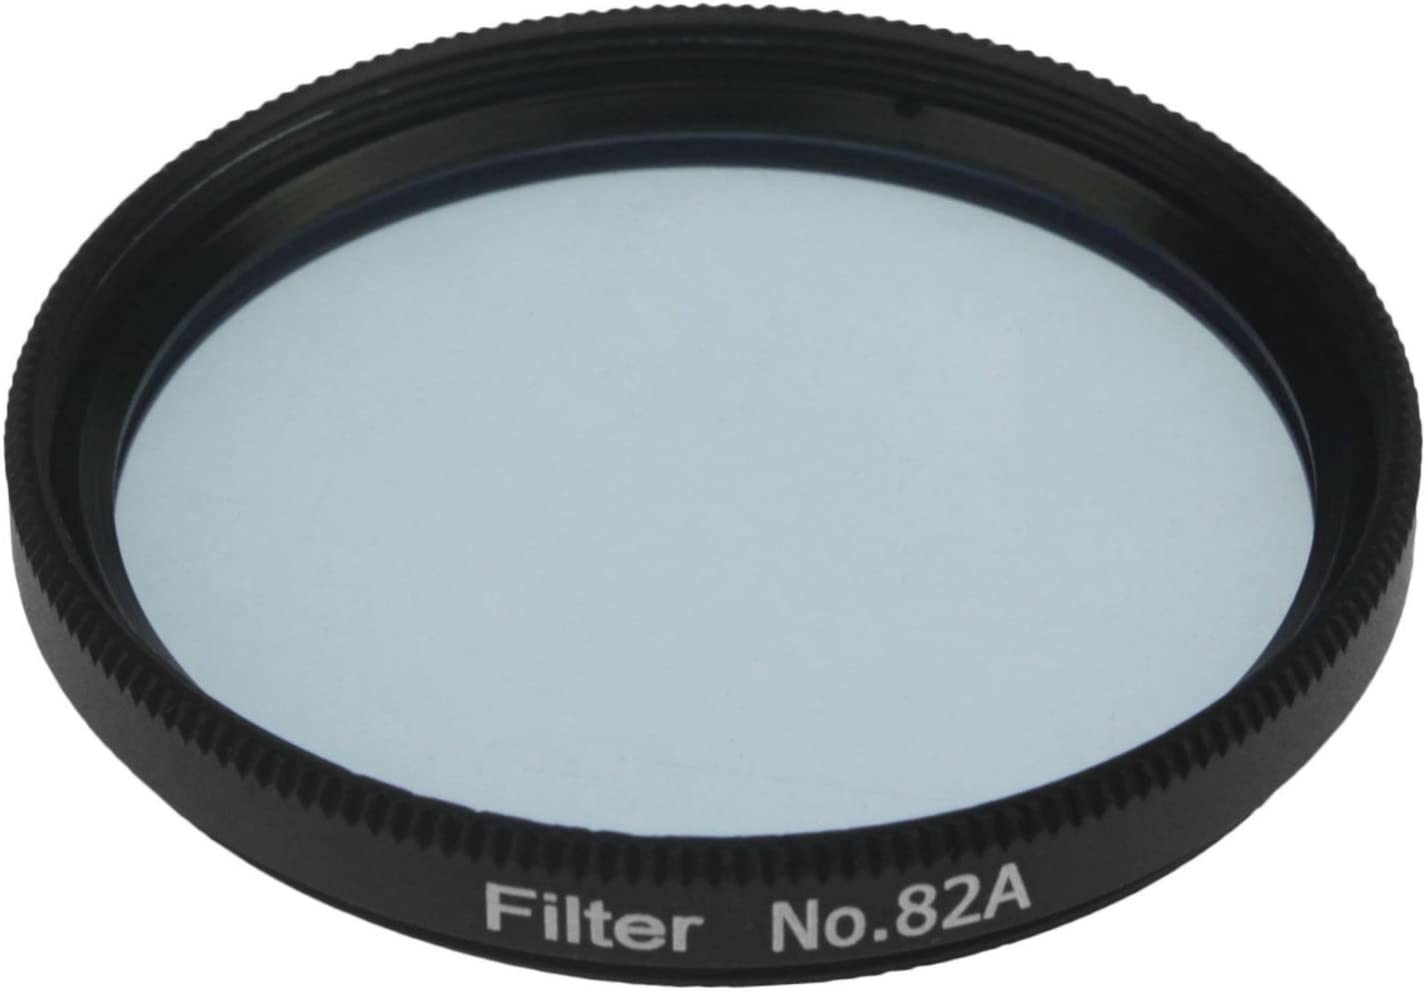 #AC54 Astromania 1.25 Color//Planetary Moon Filter for Telescope